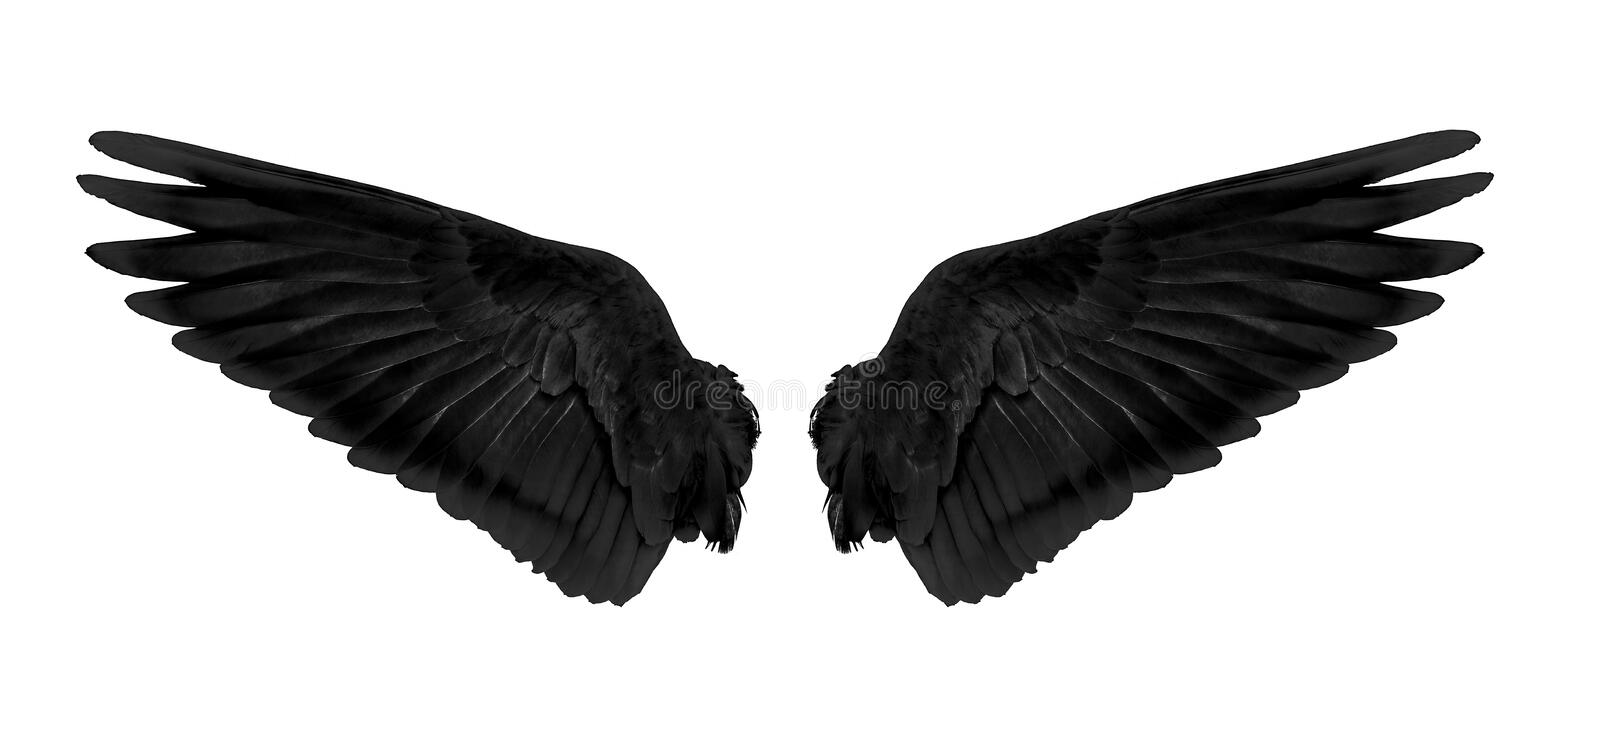 Black wings isolated on white background stock photos